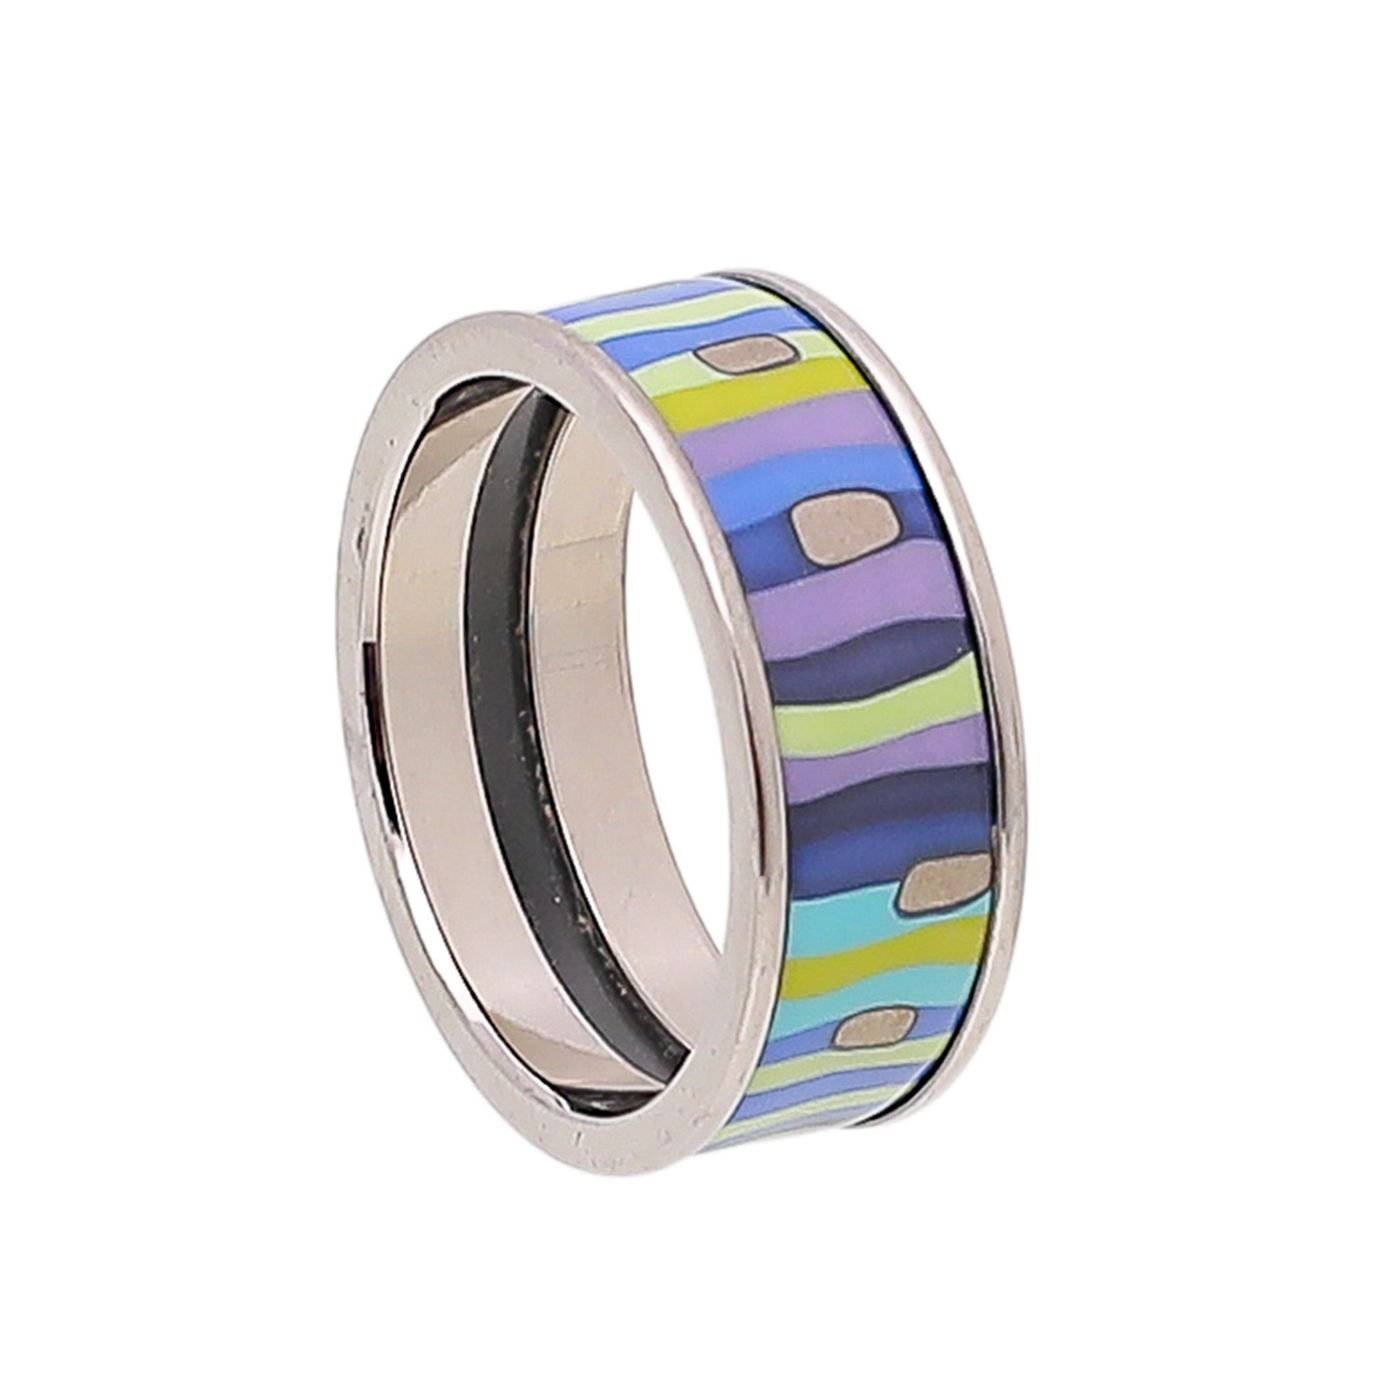 Frey Wille Multicolor Spiral Of Life Ring